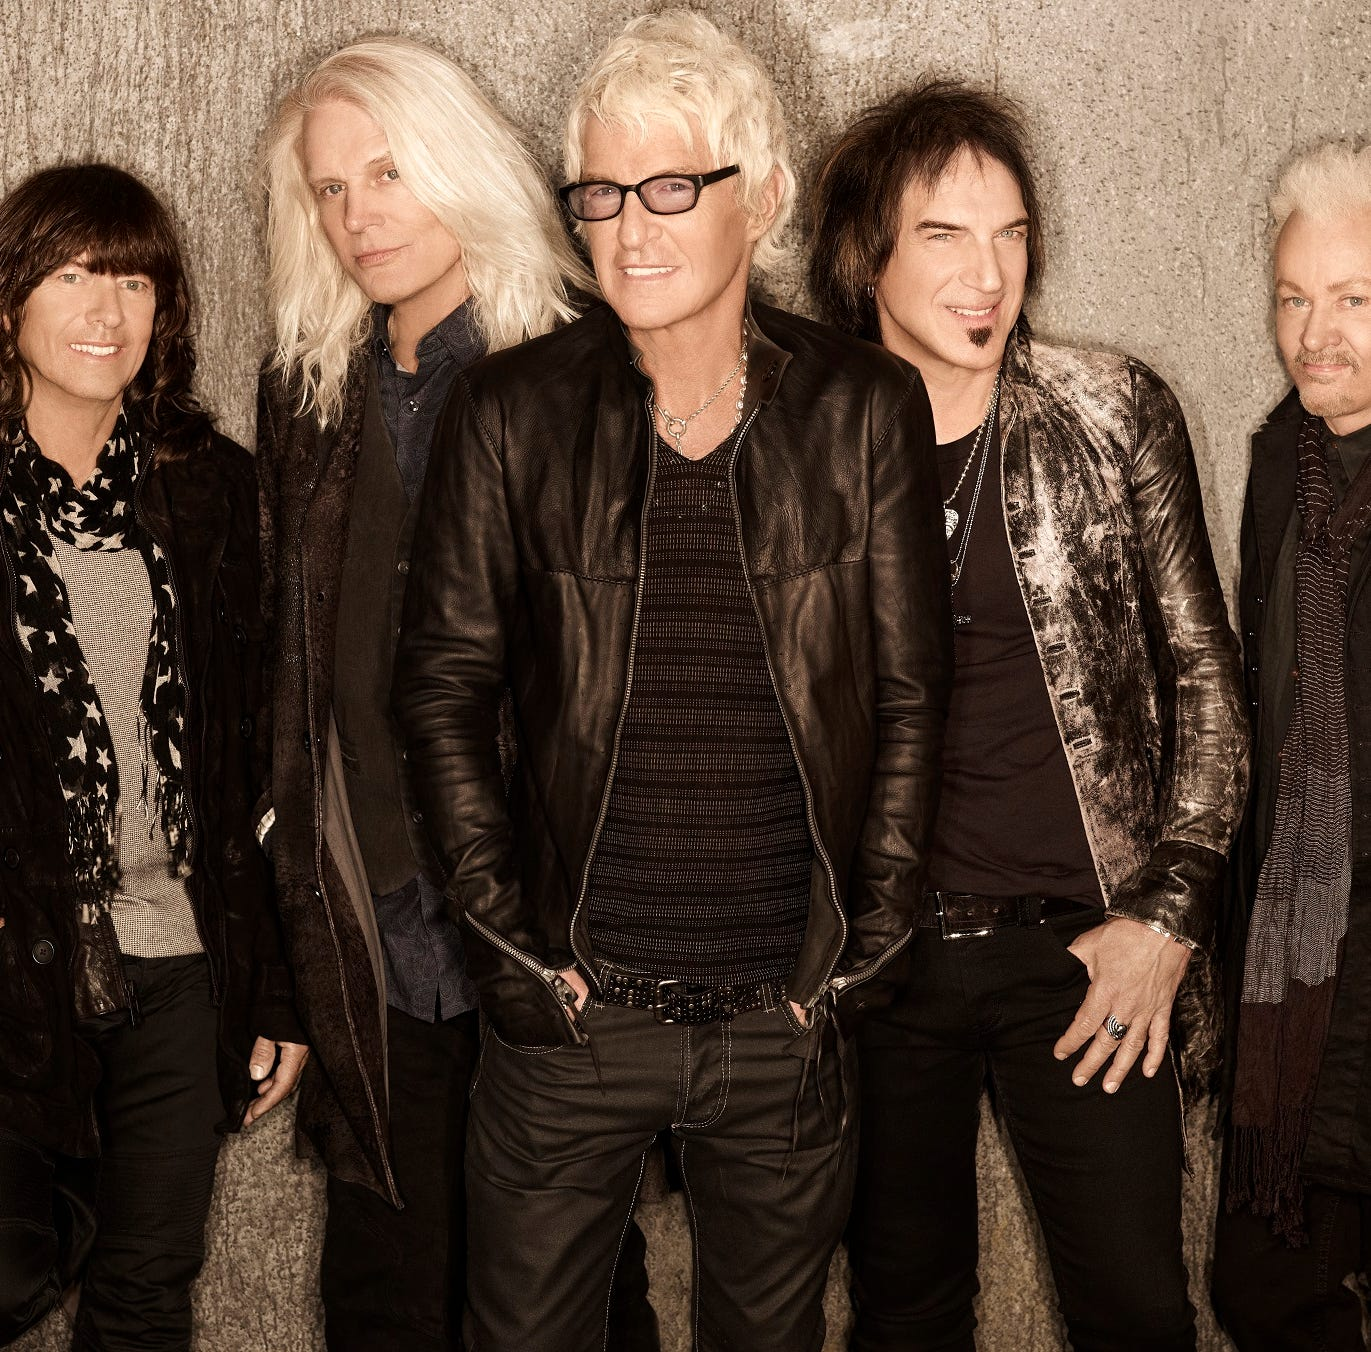 REO Speedwagon to 'Take it on the Run' in Wichita Falls